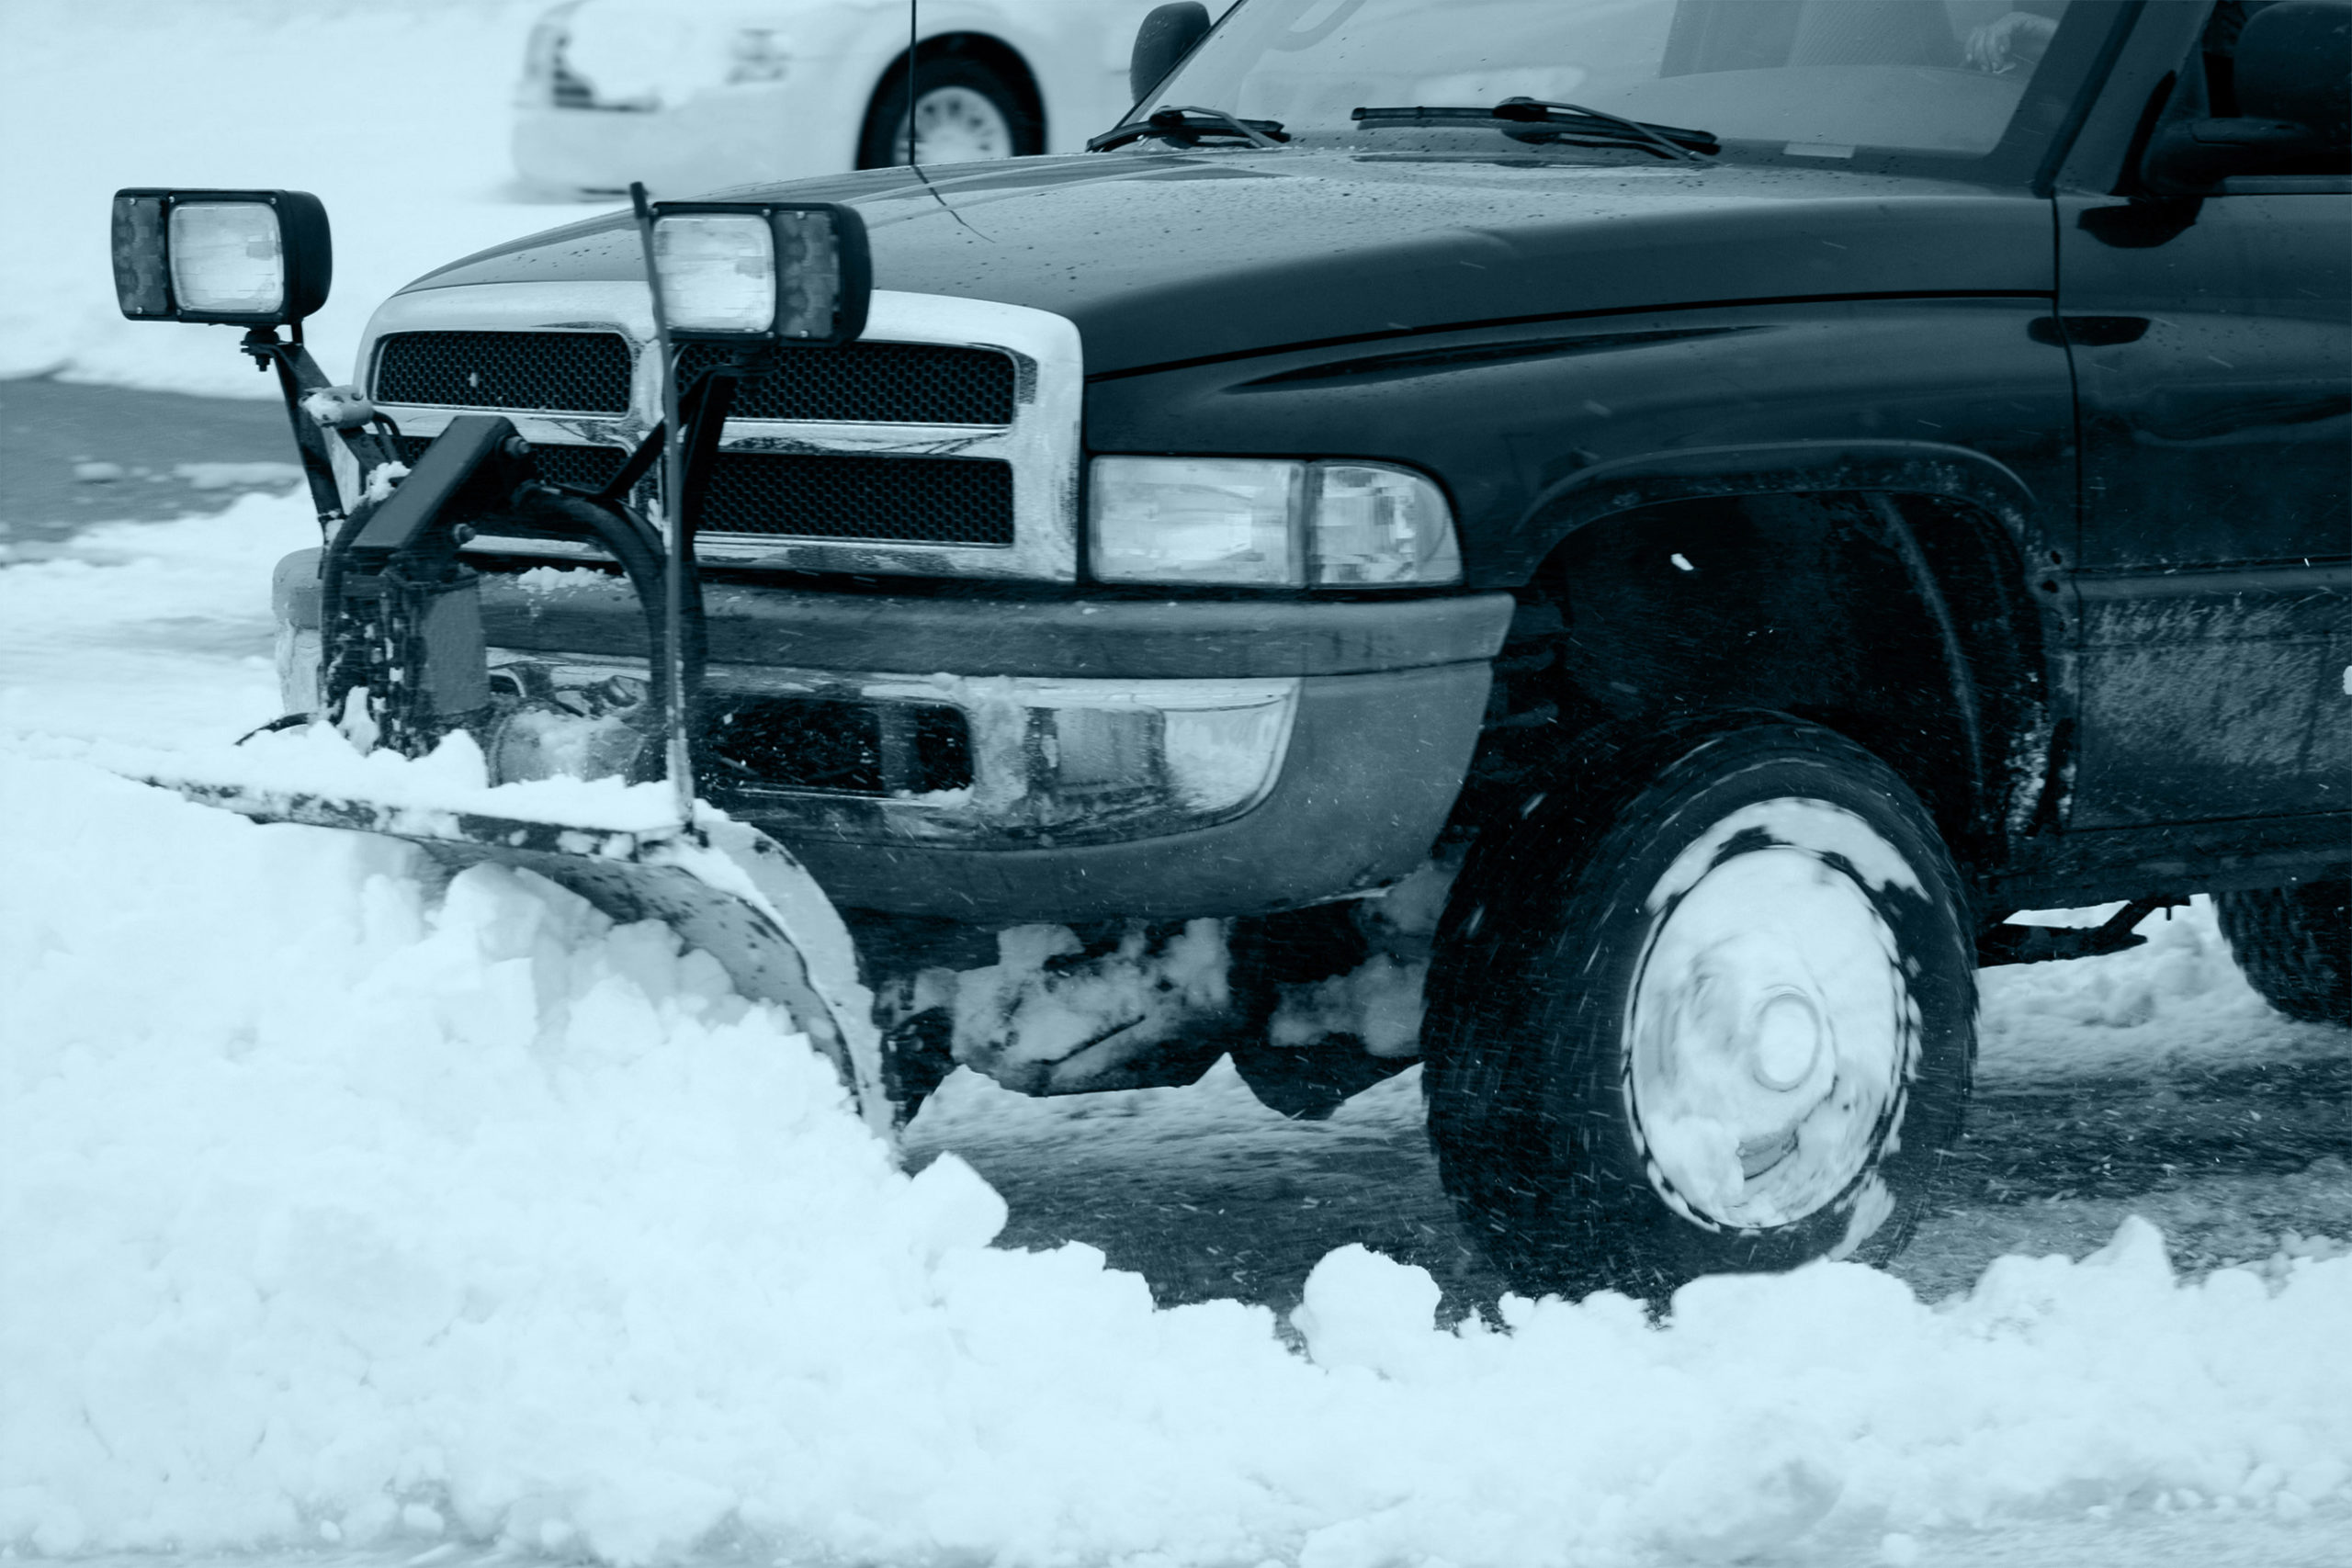 The importance of having the proper insurance to defend your snow removal business